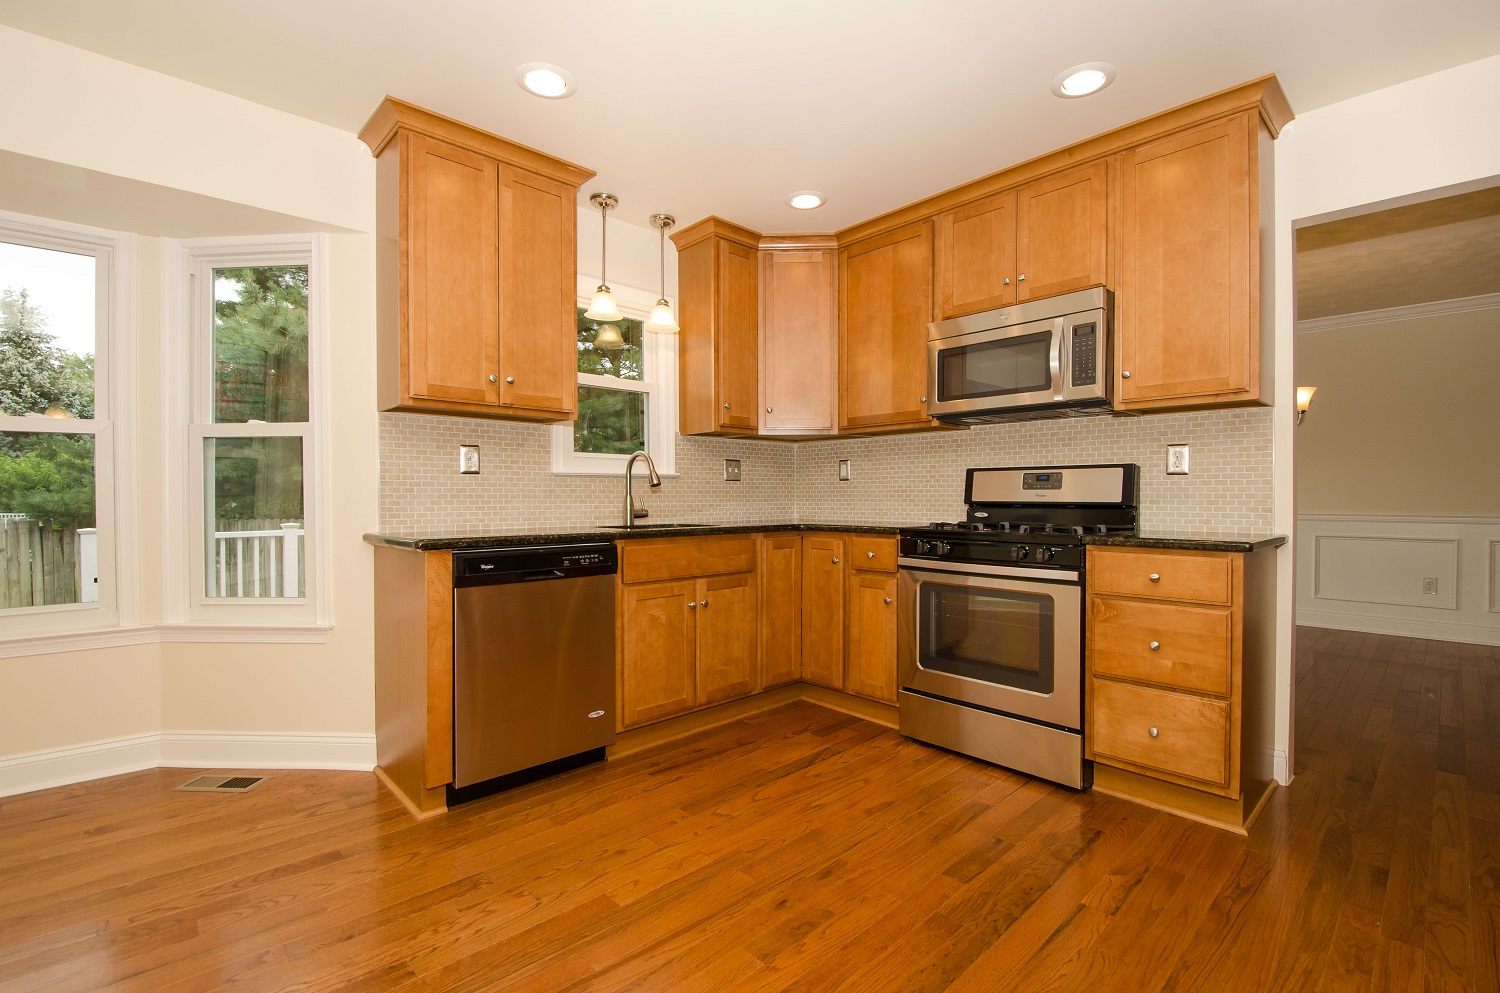 42 Inch Kitchen Cabinets Magnificent Colonial Home For Sale In Bensalem Pa Real Estate